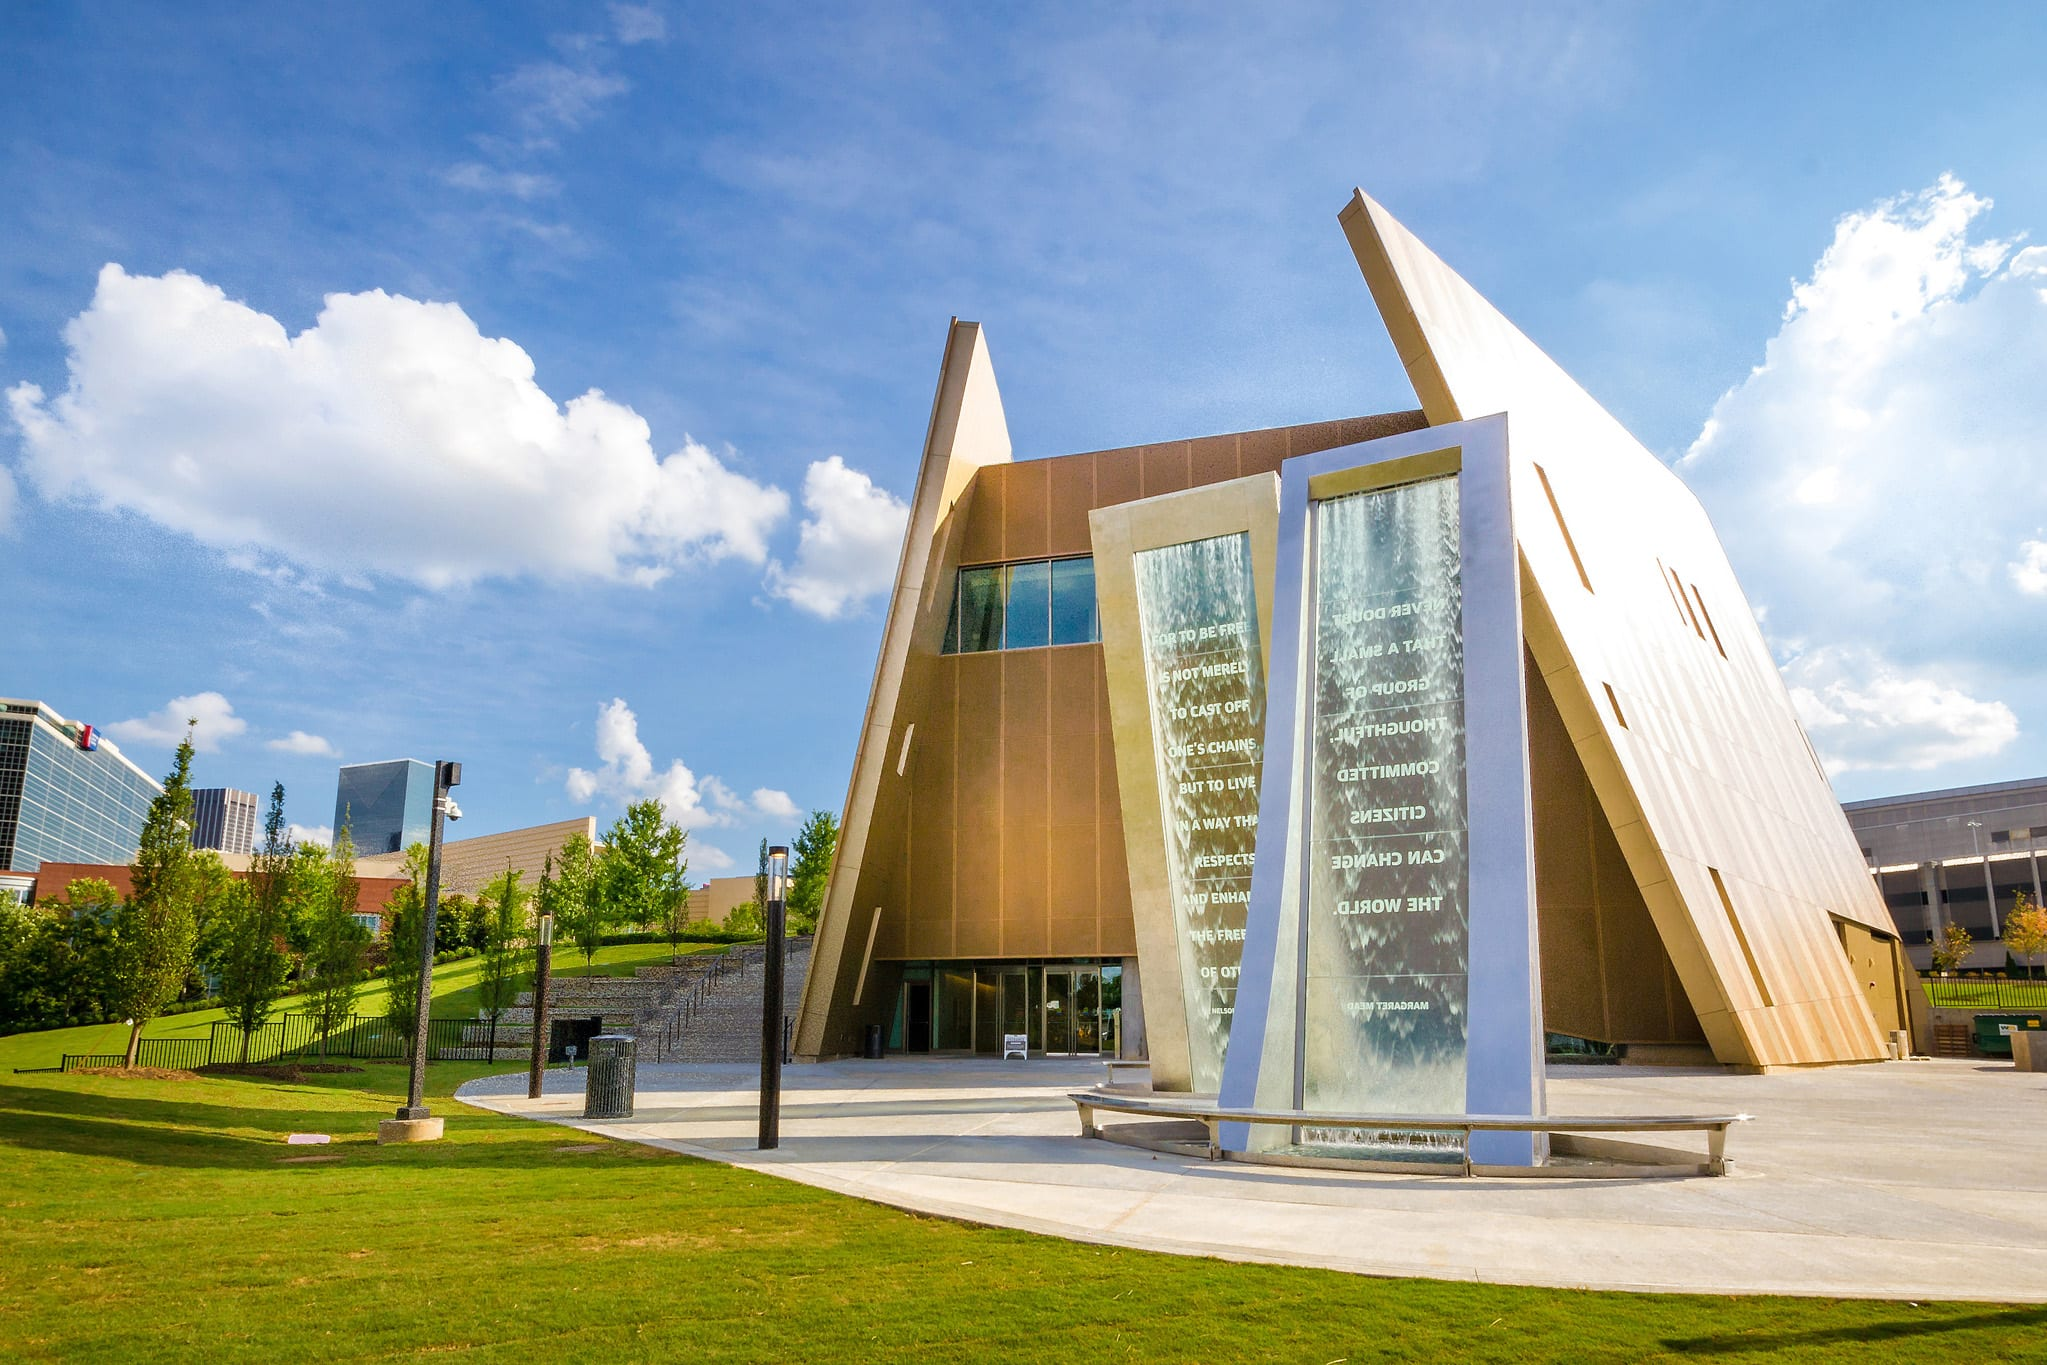 The National Center for Civil and Human Rights is one of Atlanta's top tourist attractions